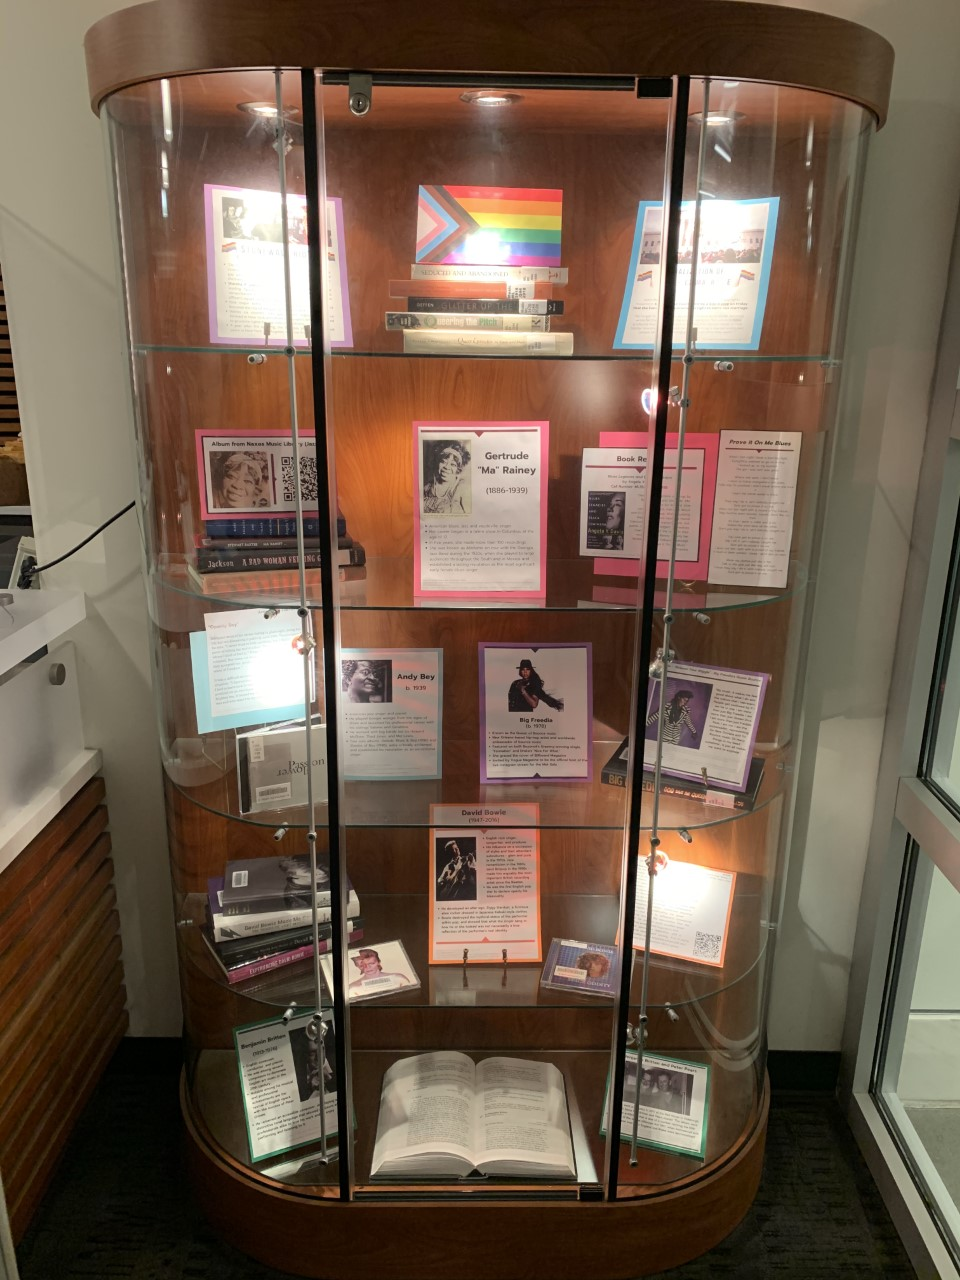 DeVine Display Case featuring LGBTQIA+ materials